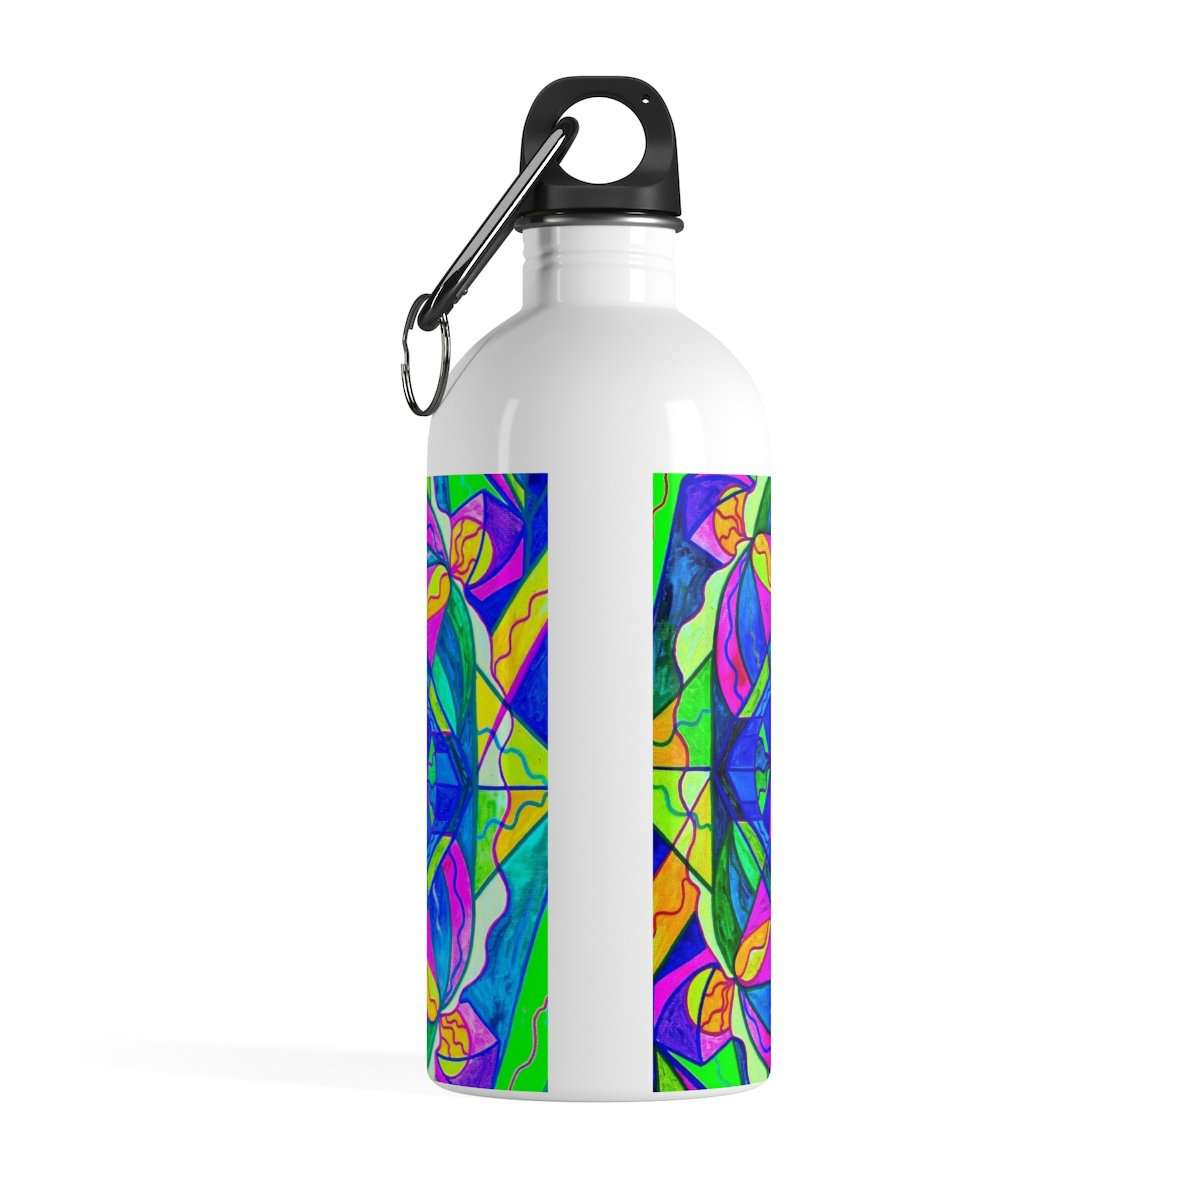 Positive Focus - Stainless Steel Water Bottle